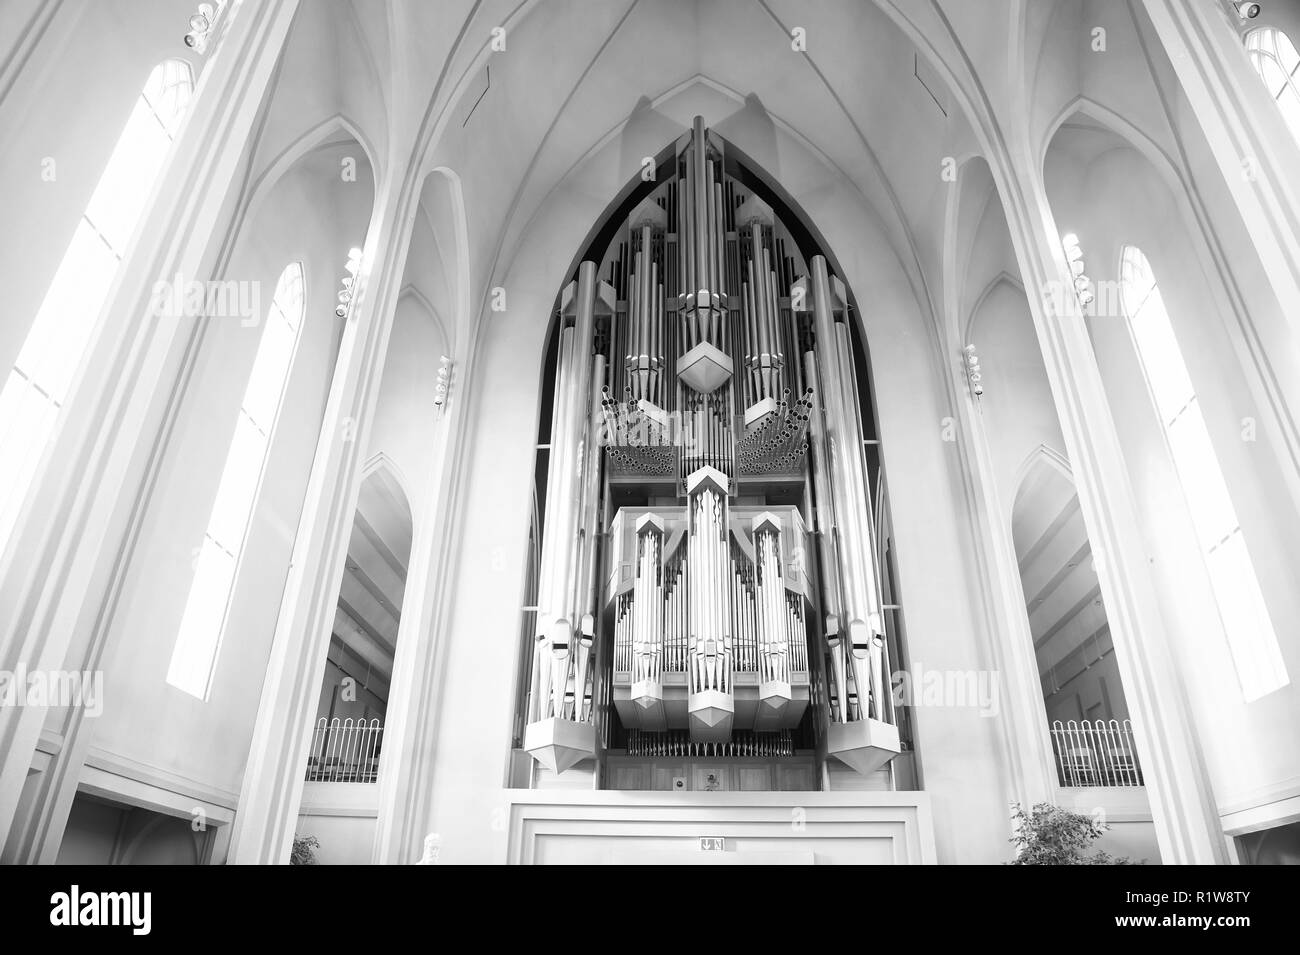 Reykjavik, Iceland - October 12, 2017: church organ flue pipes. Pipe organ in cathedral interior. Music and musical instrument. Religion or cult and christianity. Architecture and design. - Stock Image